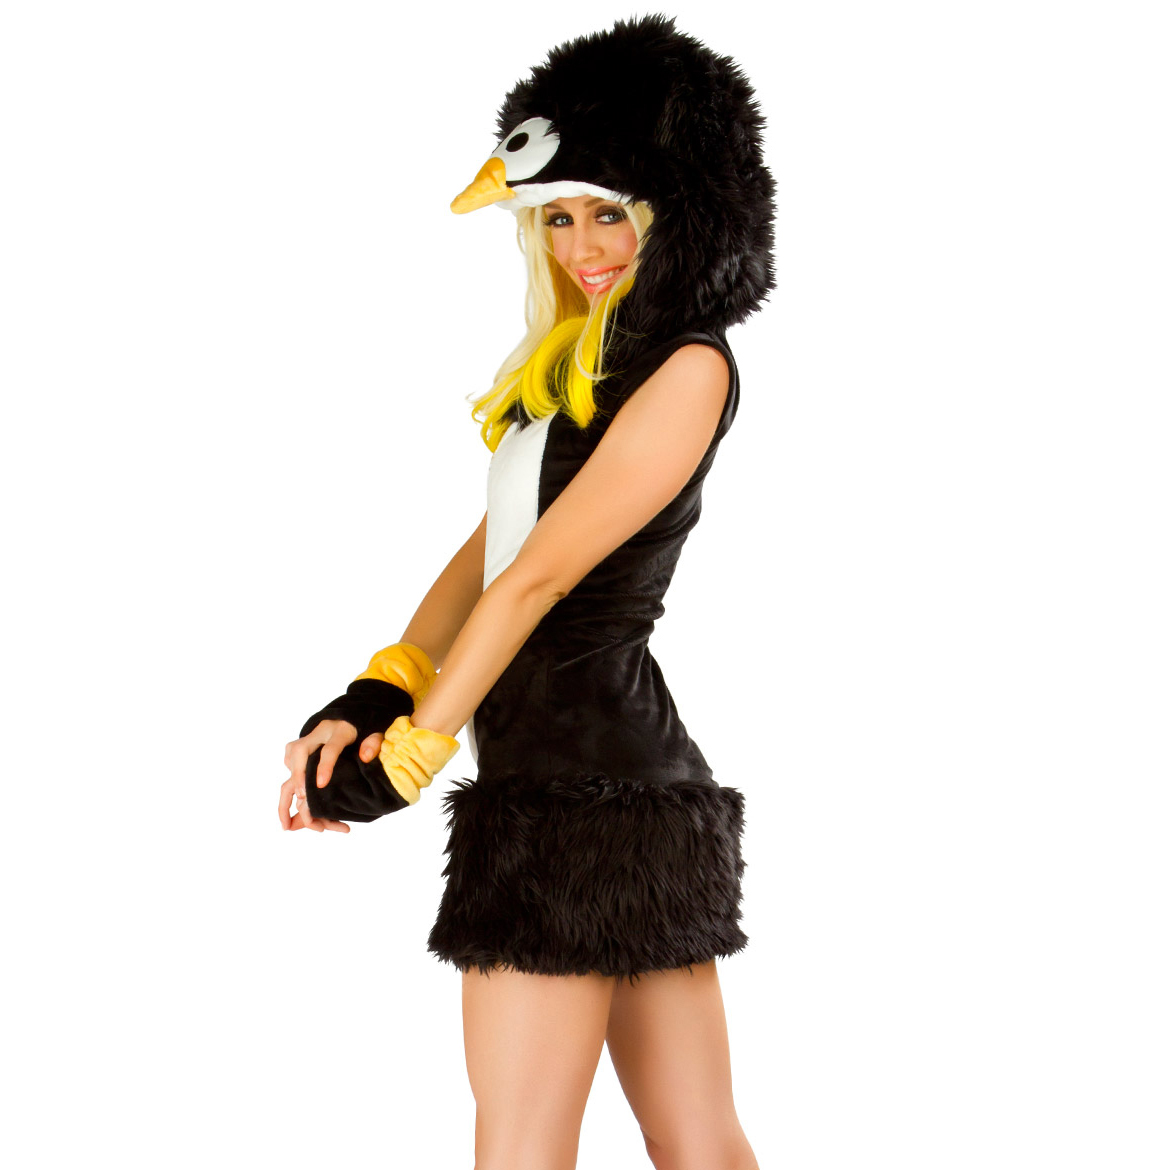 Trick-or-treaters of all ages can waddle door to door this Halloween with fun penguin costumes. With a vast inventory on eBay, finding all sizes and styles is simple. For those littlest pumpkins, opt for baby penguin costumes. These consist of fleece and felt materials.